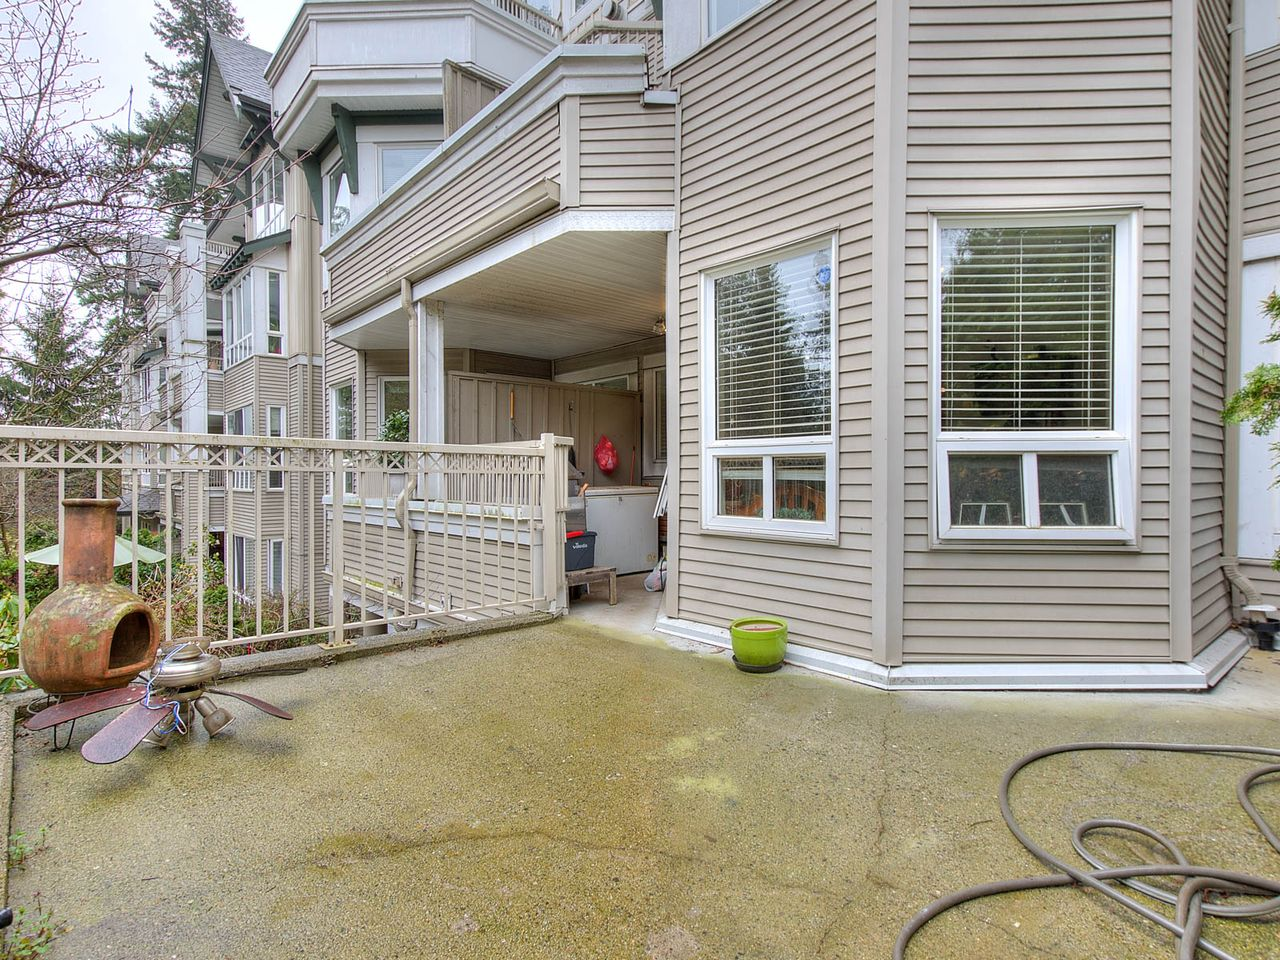 218-7383-griffiths-burnaby-19 at 218 - 7383 Griffiths Drive, Highgate, Burnaby South